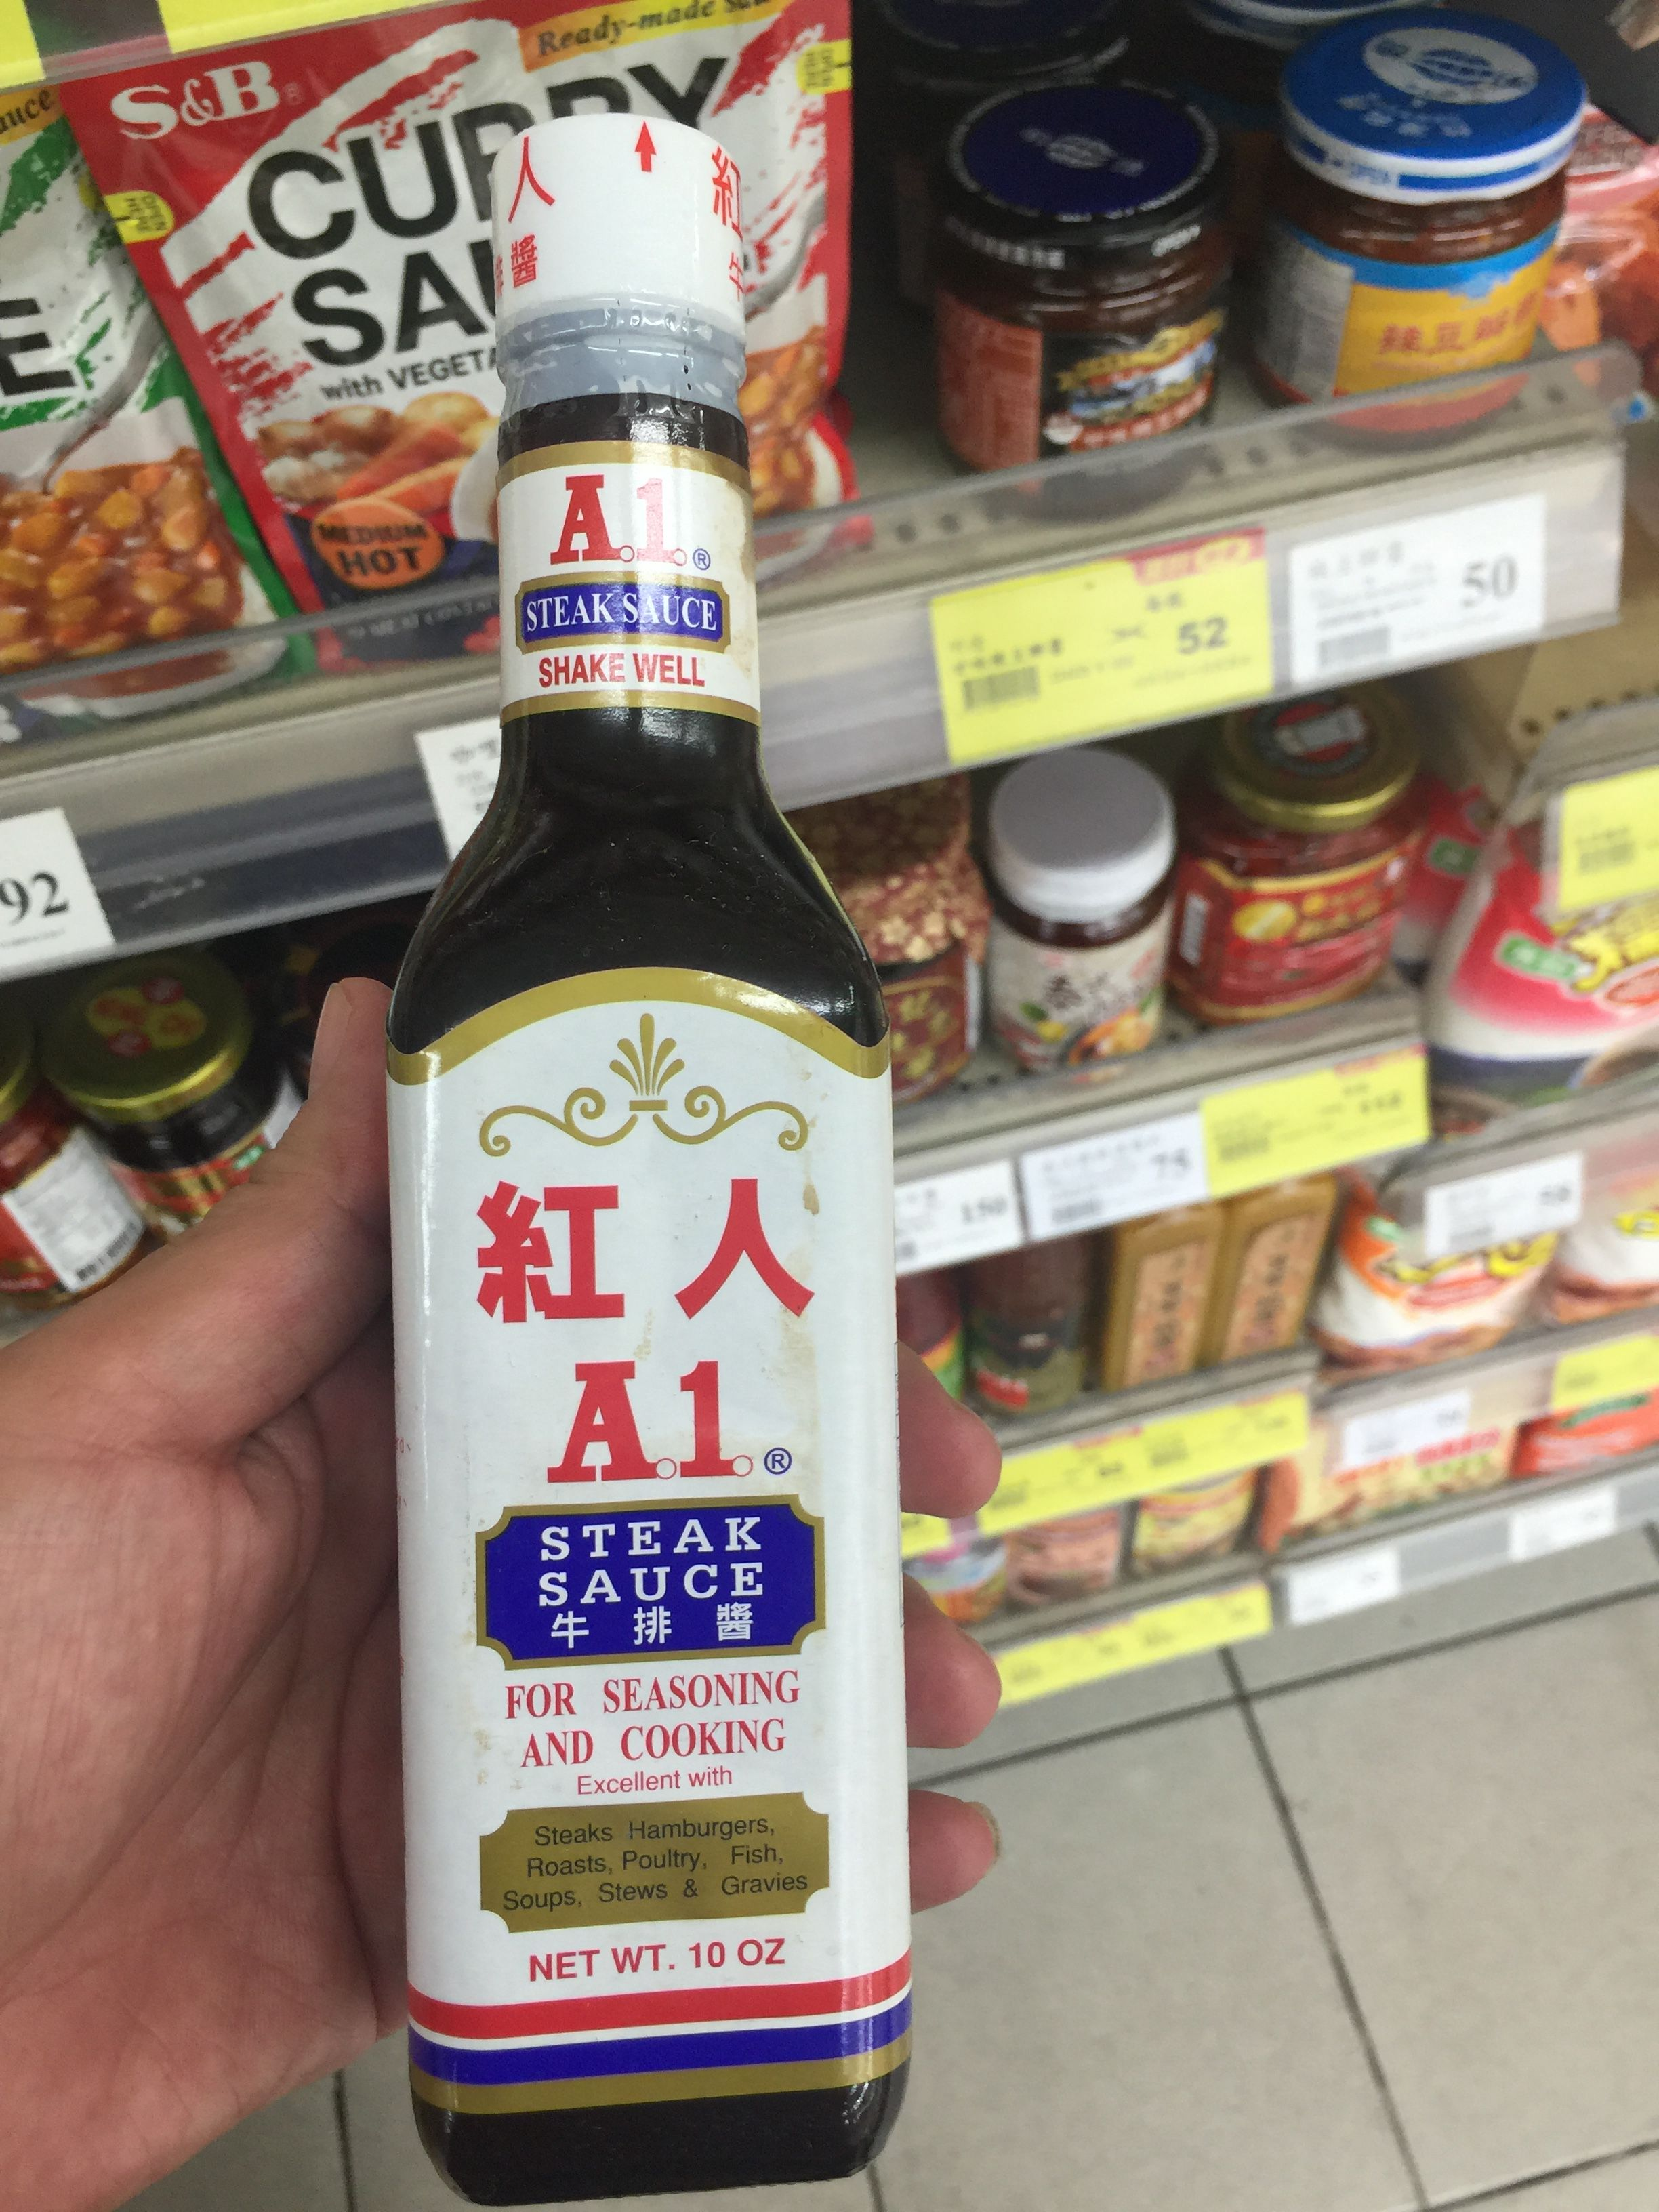 A1 Sauce Packaging In Taiwan Taipei Supermarket Photo Taken By My Uncle About Packaging Catered Towards The Consumer Steak Sauce A 1 Sauce Sauce